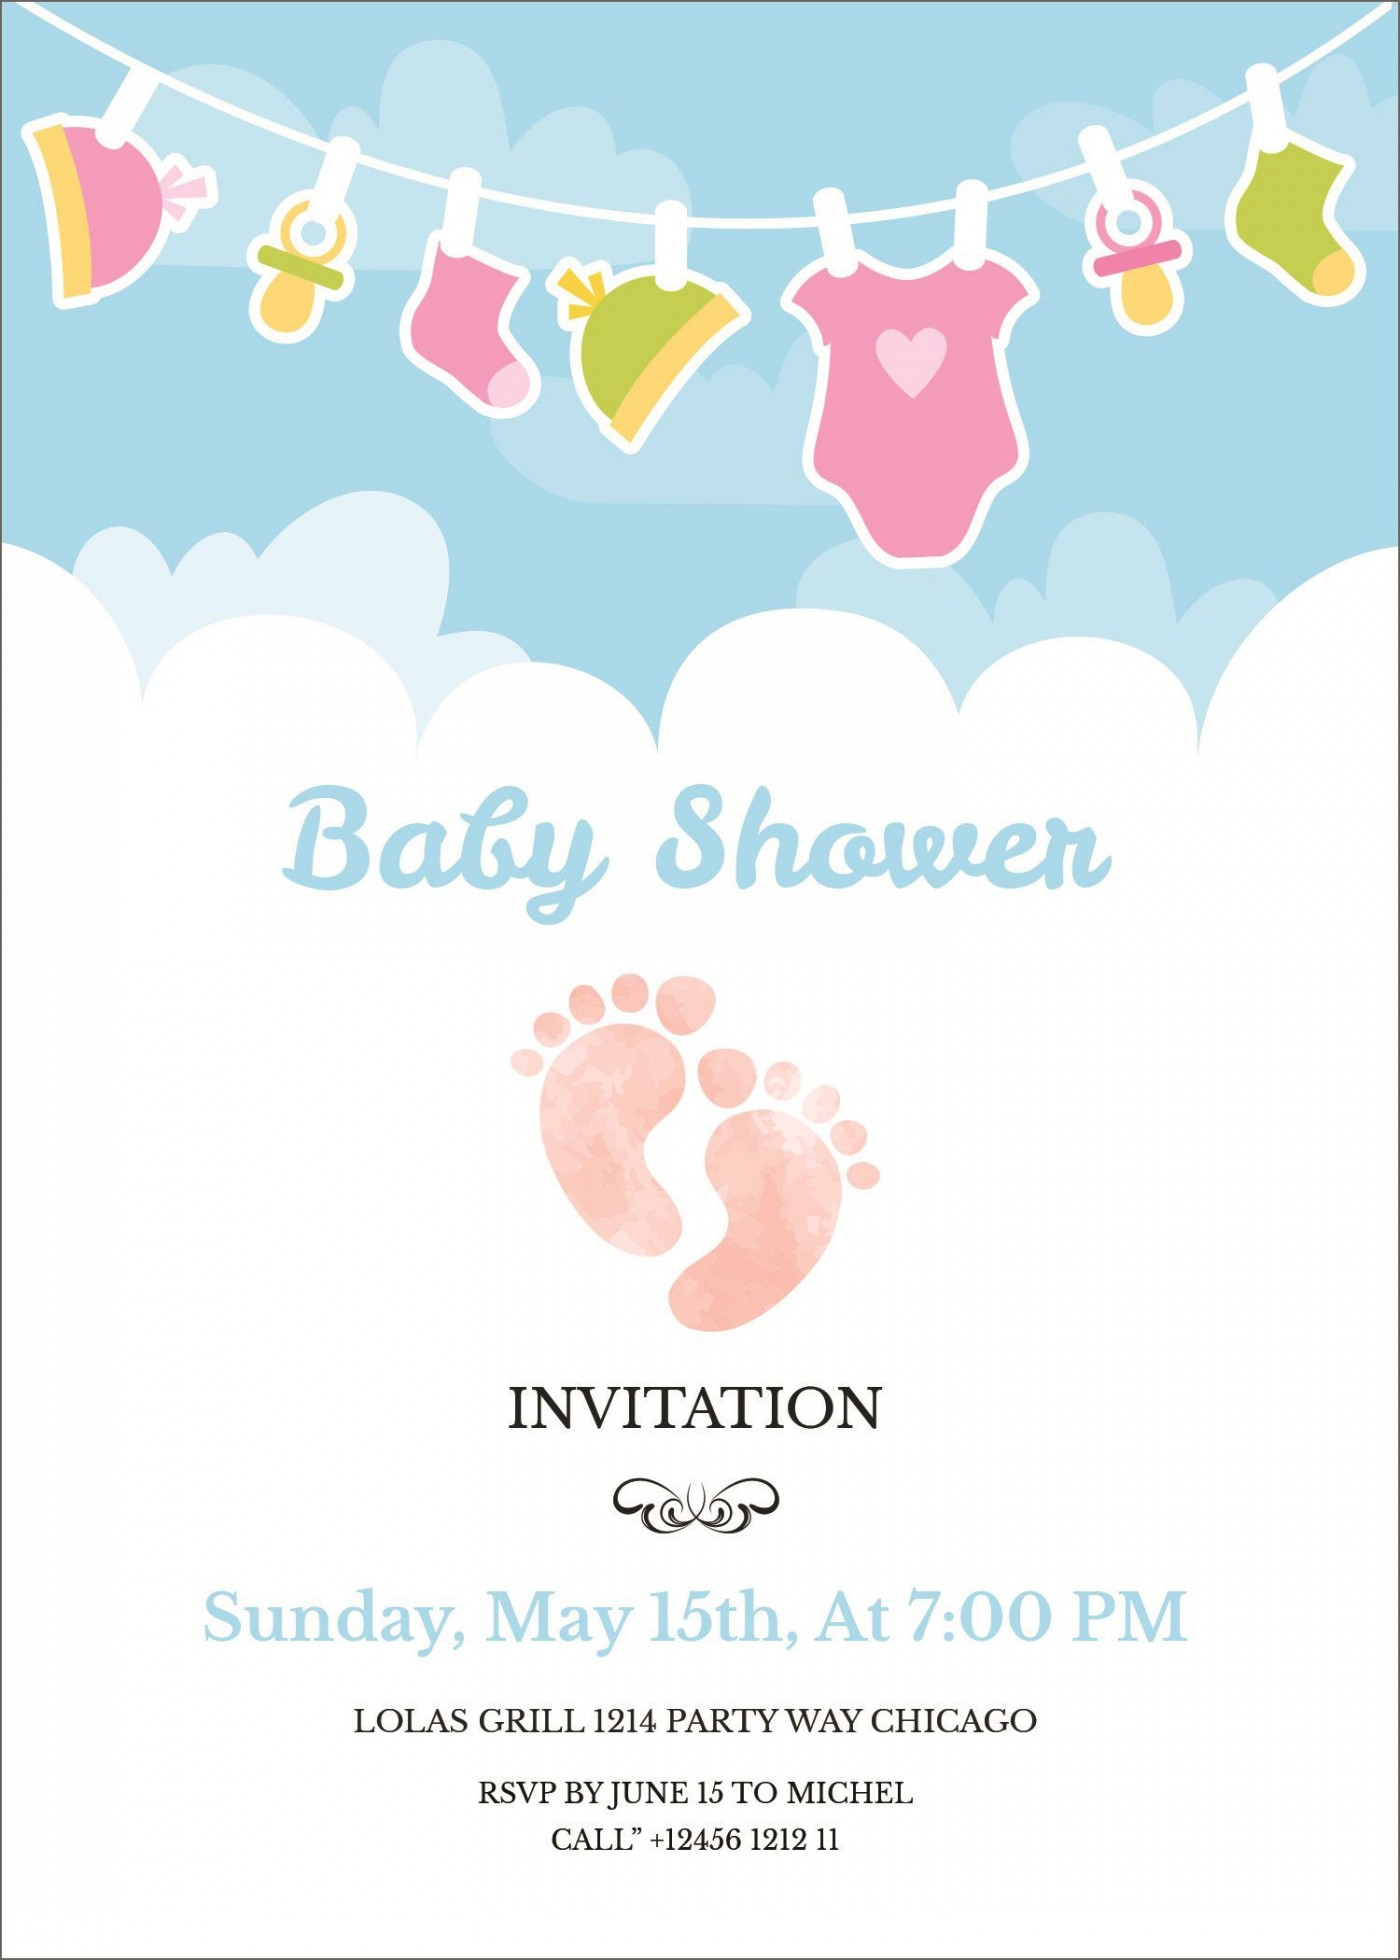 004 Awful Baby Shower Invitation Card Template Free Download Design  Indian1400